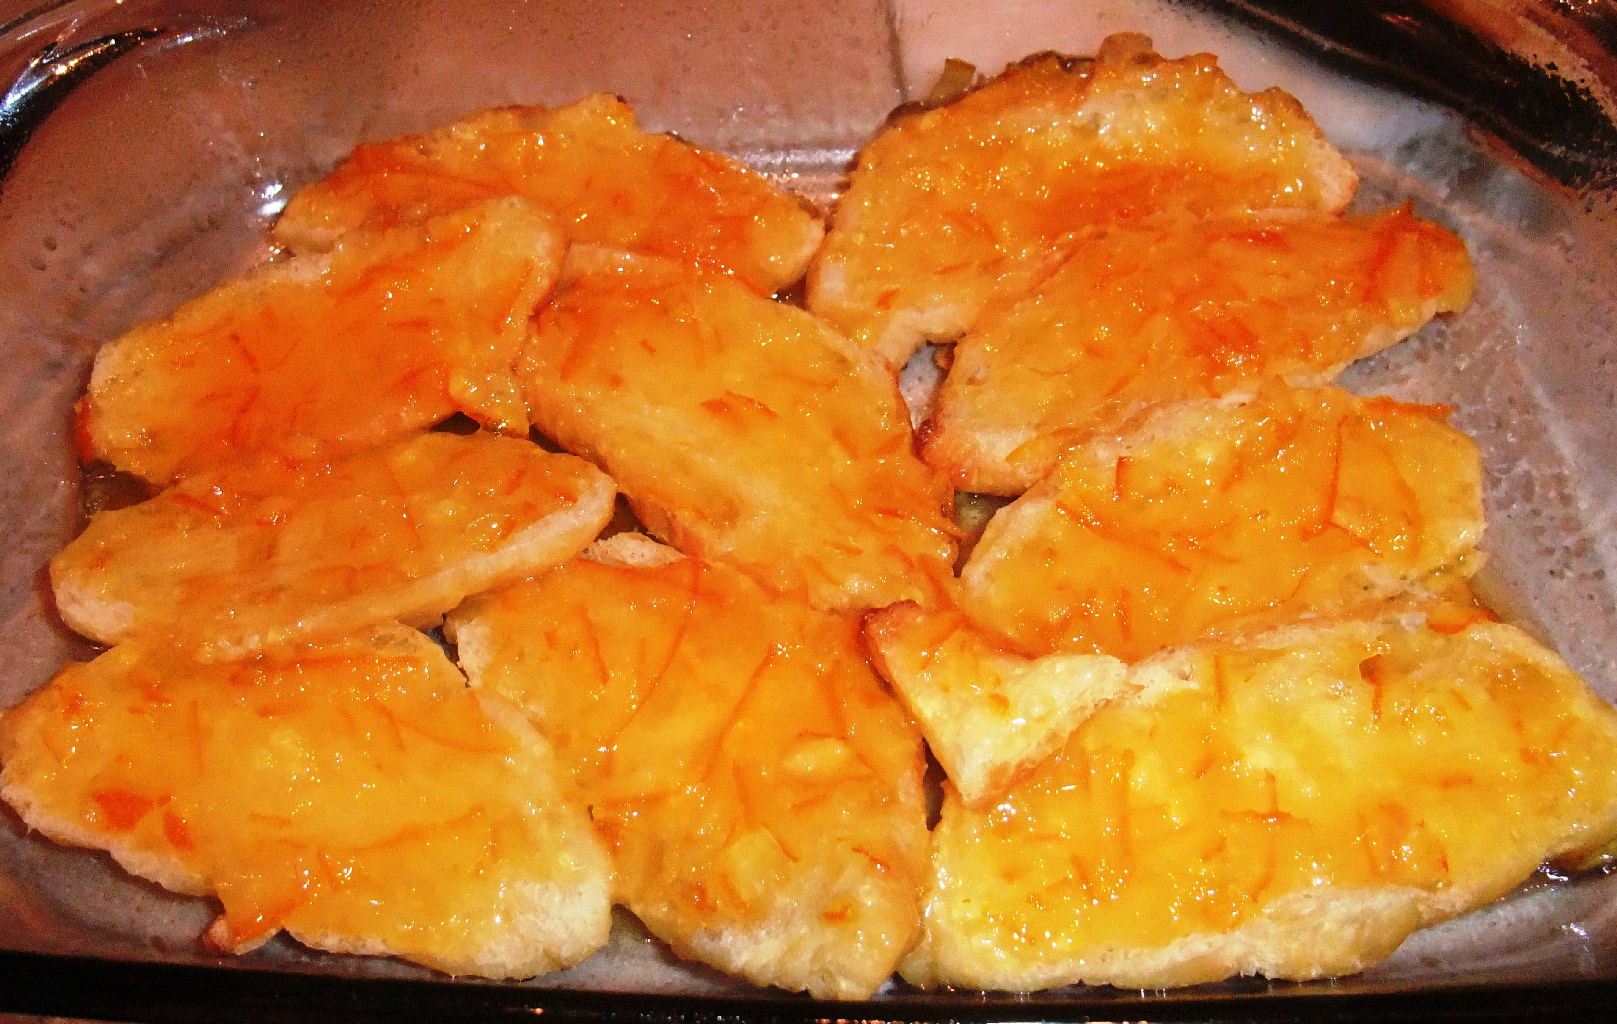 Croissant breakfast casserole made with orange marmalade, eggs, and cream--luscious, and super easy.